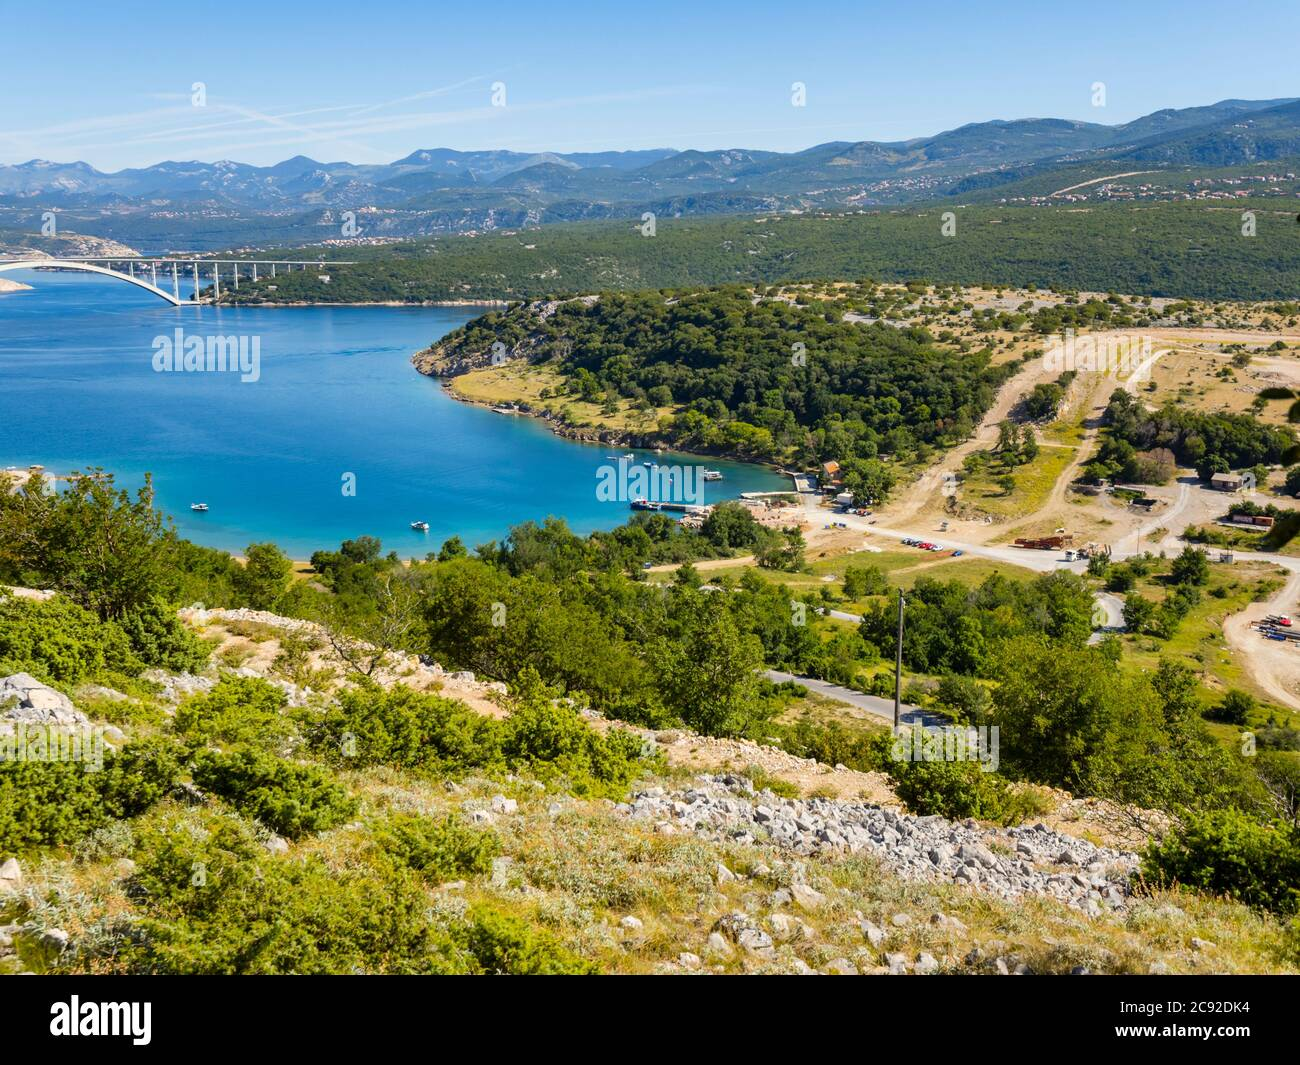 Scenery view atop Voz towards bridge to mainland on island Krk in Croatia Europe Stock Photo